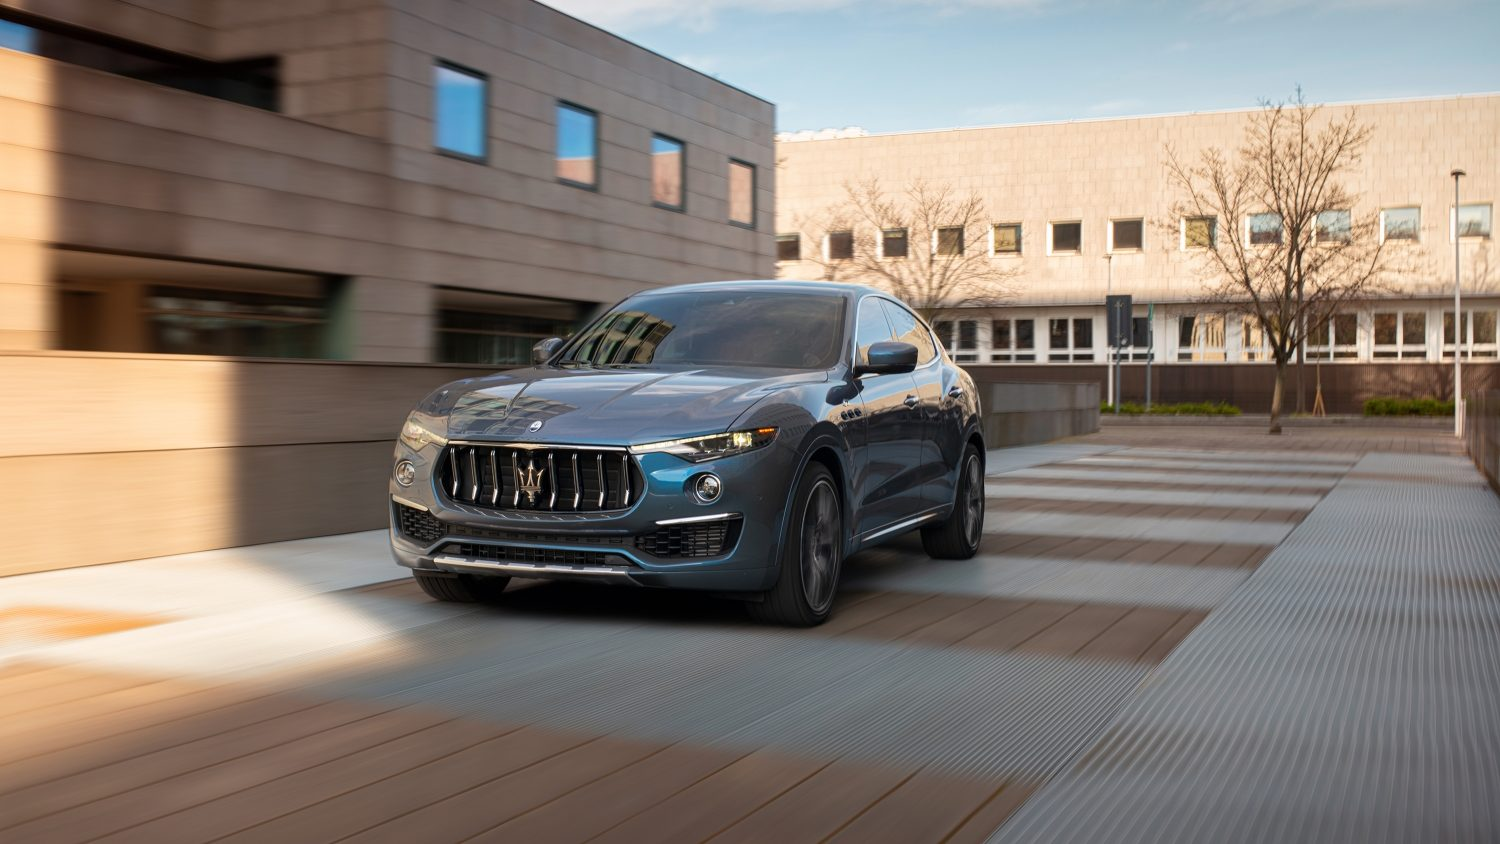 An image of a Maserati Levante Hybrid outdoors.